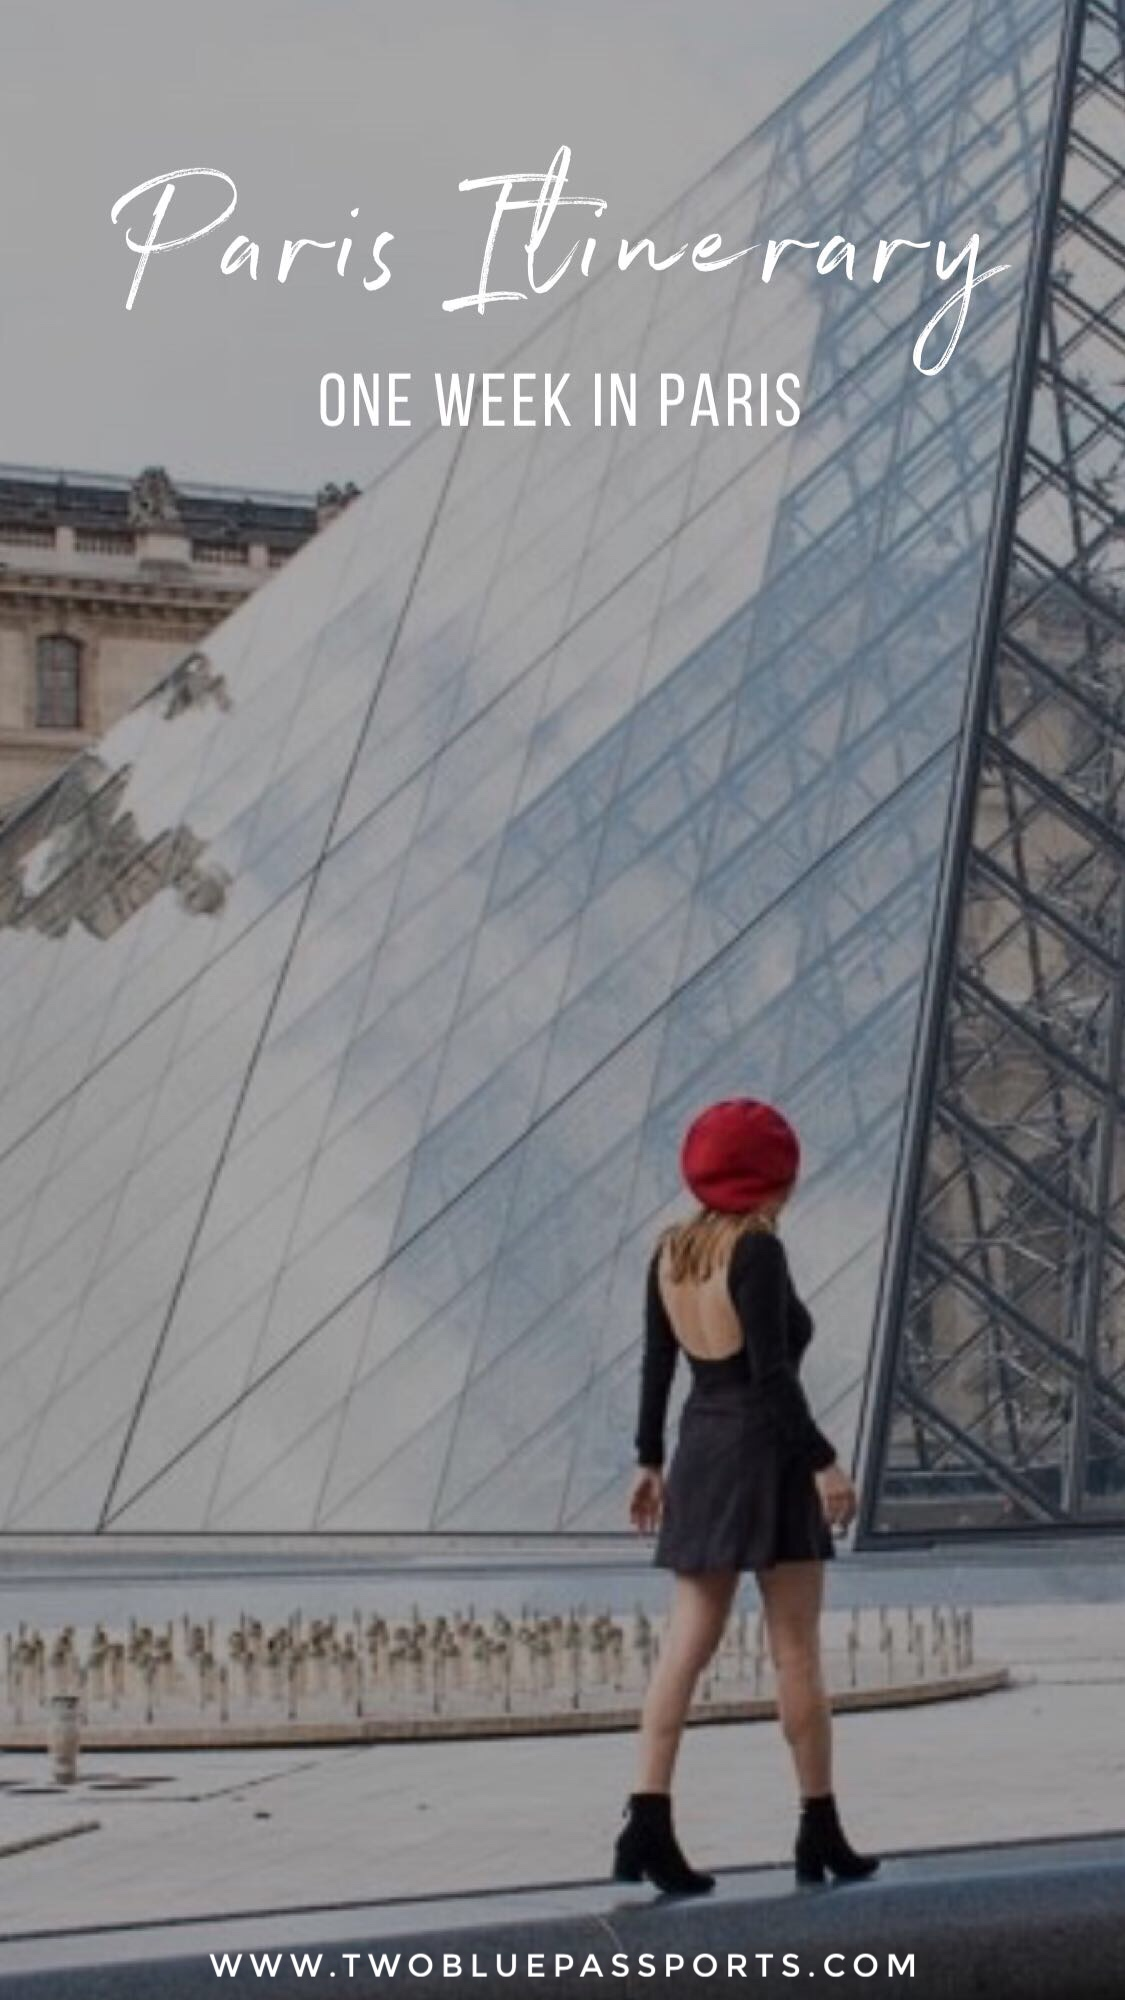 Two Blue Passports' One Week Itinerary for Paris, France. #Paris #France #Itinerary #Visitparis #VisitFrance #Louvre